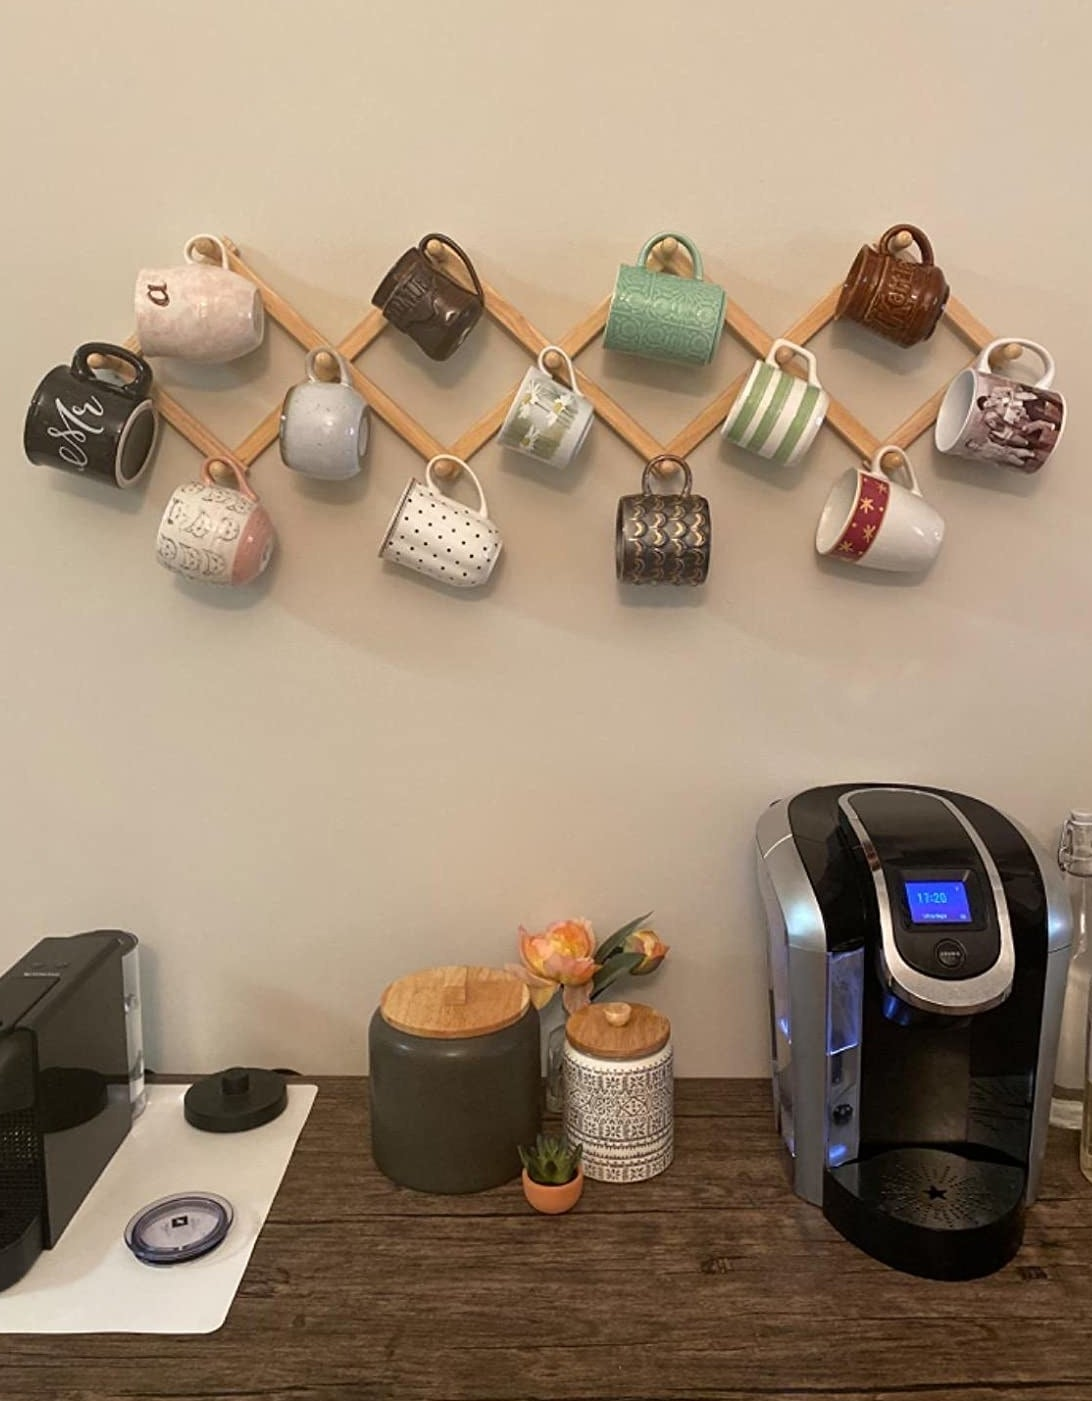 A reviewer's photo of the rack holding mugs